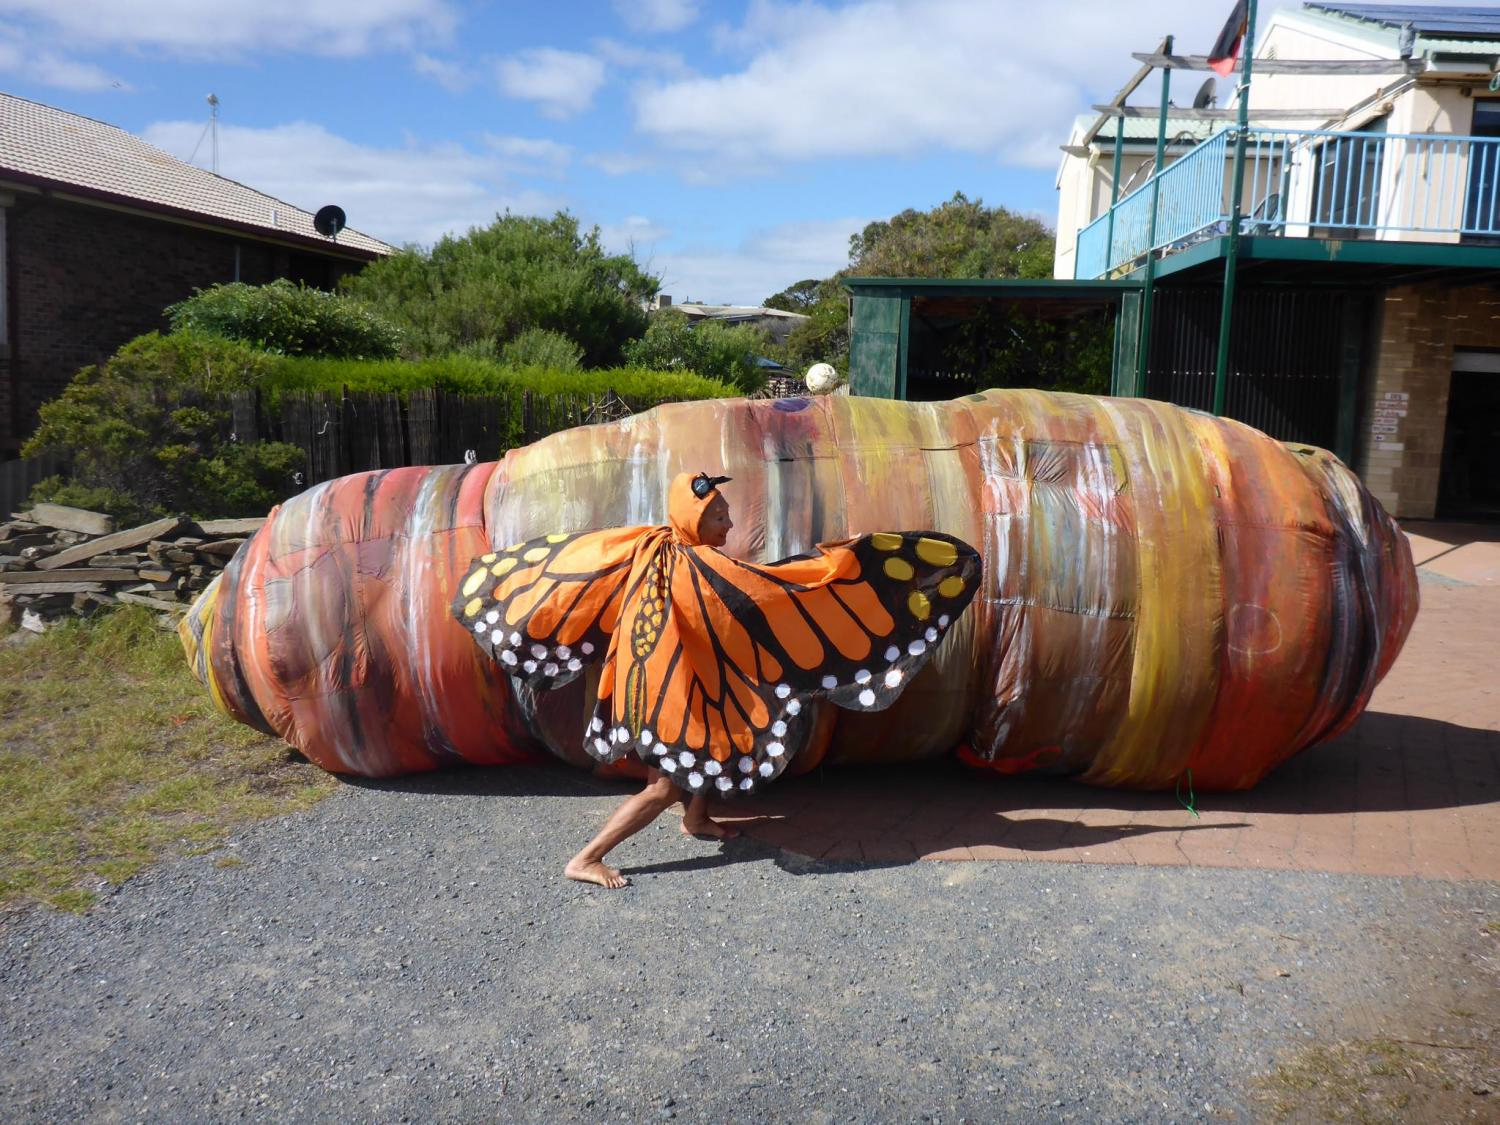 Giant inflatable caterpillar - Evelyn Roth